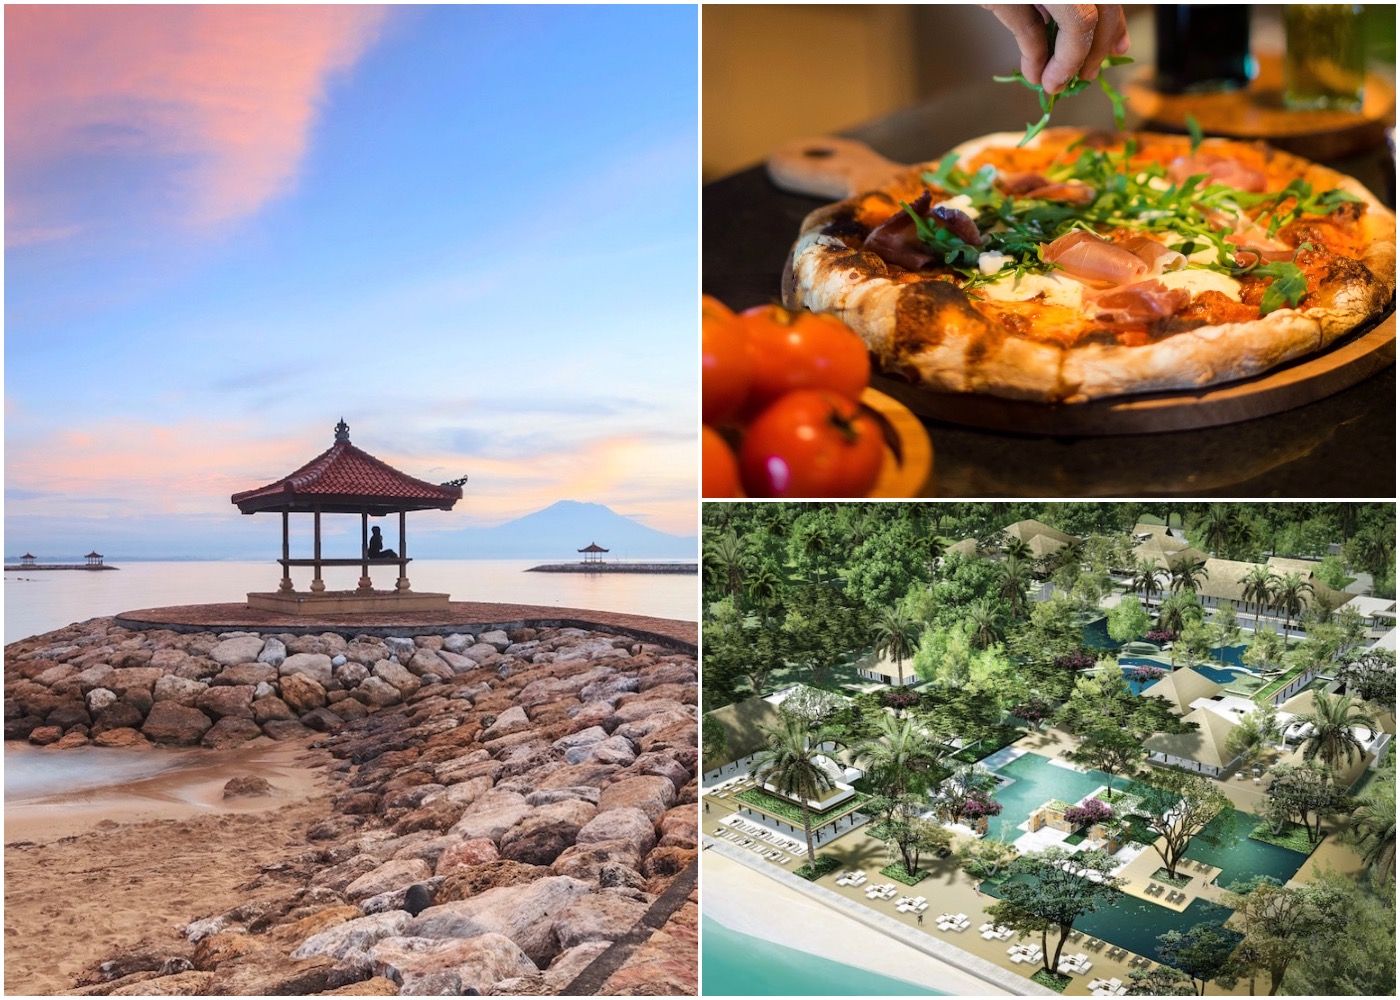 Neighbourhood Guide - where to stay, eat & beach in Sanur, Bali, Indonesia